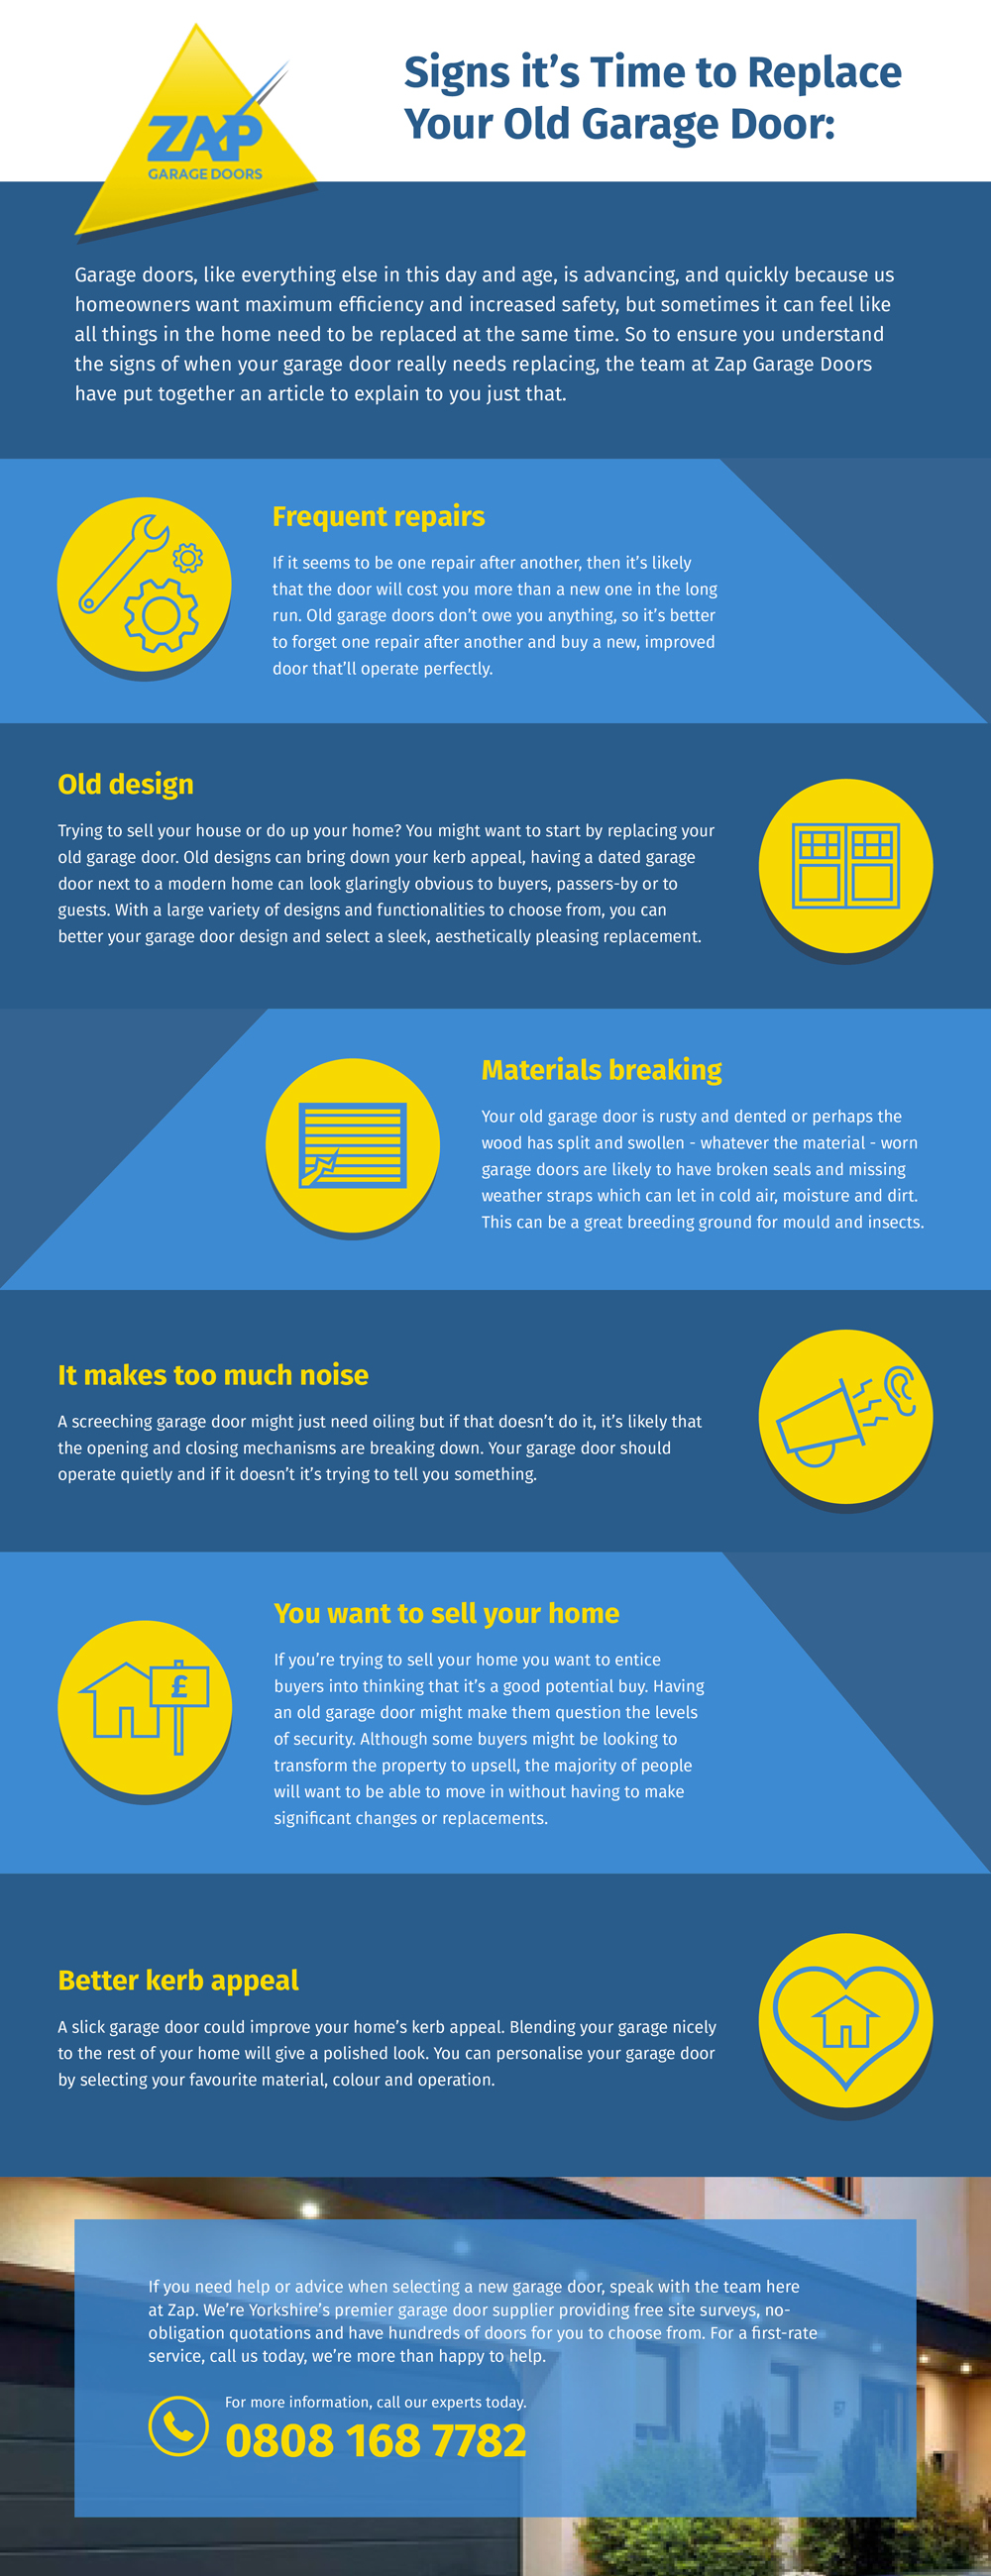 Infographic - Signs it's time to replace your old garage door.